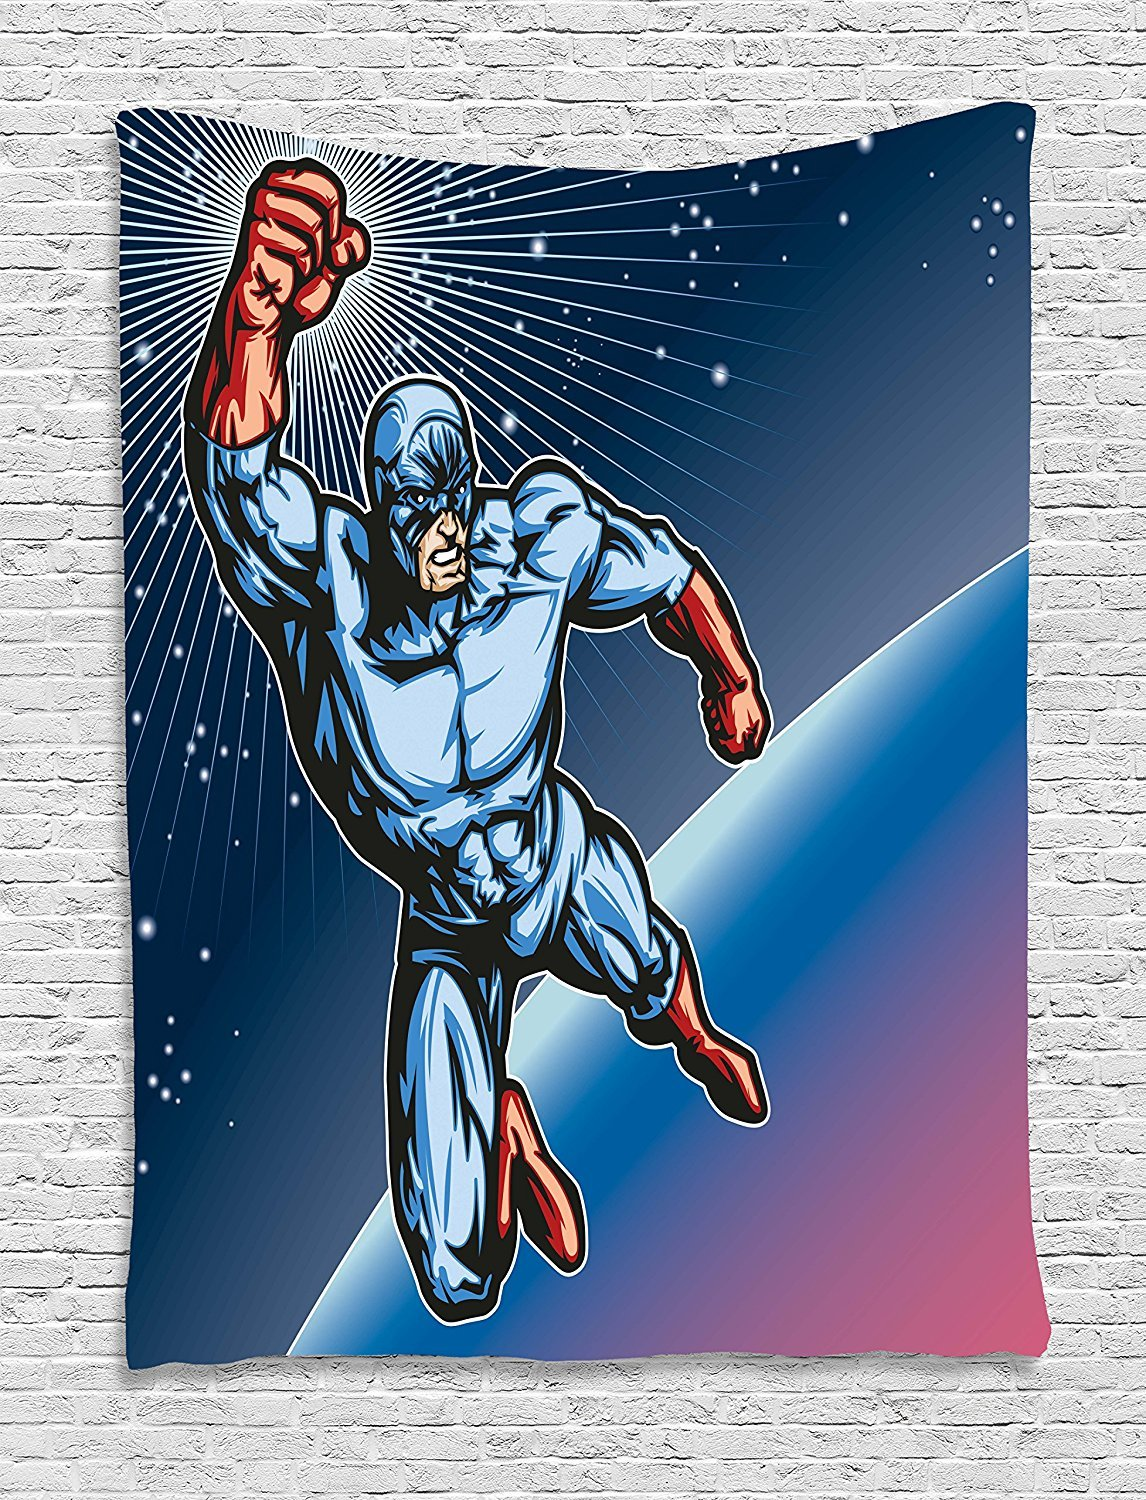 asddcdfdd Superhero Tapestry, Hero Man Floating on Space Adventure Save the Universe Punch Galaxy Image, Wall Hanging for Bedroom Living Room Dorm, 60 W X 80 L Inches, Night Blue Ruby